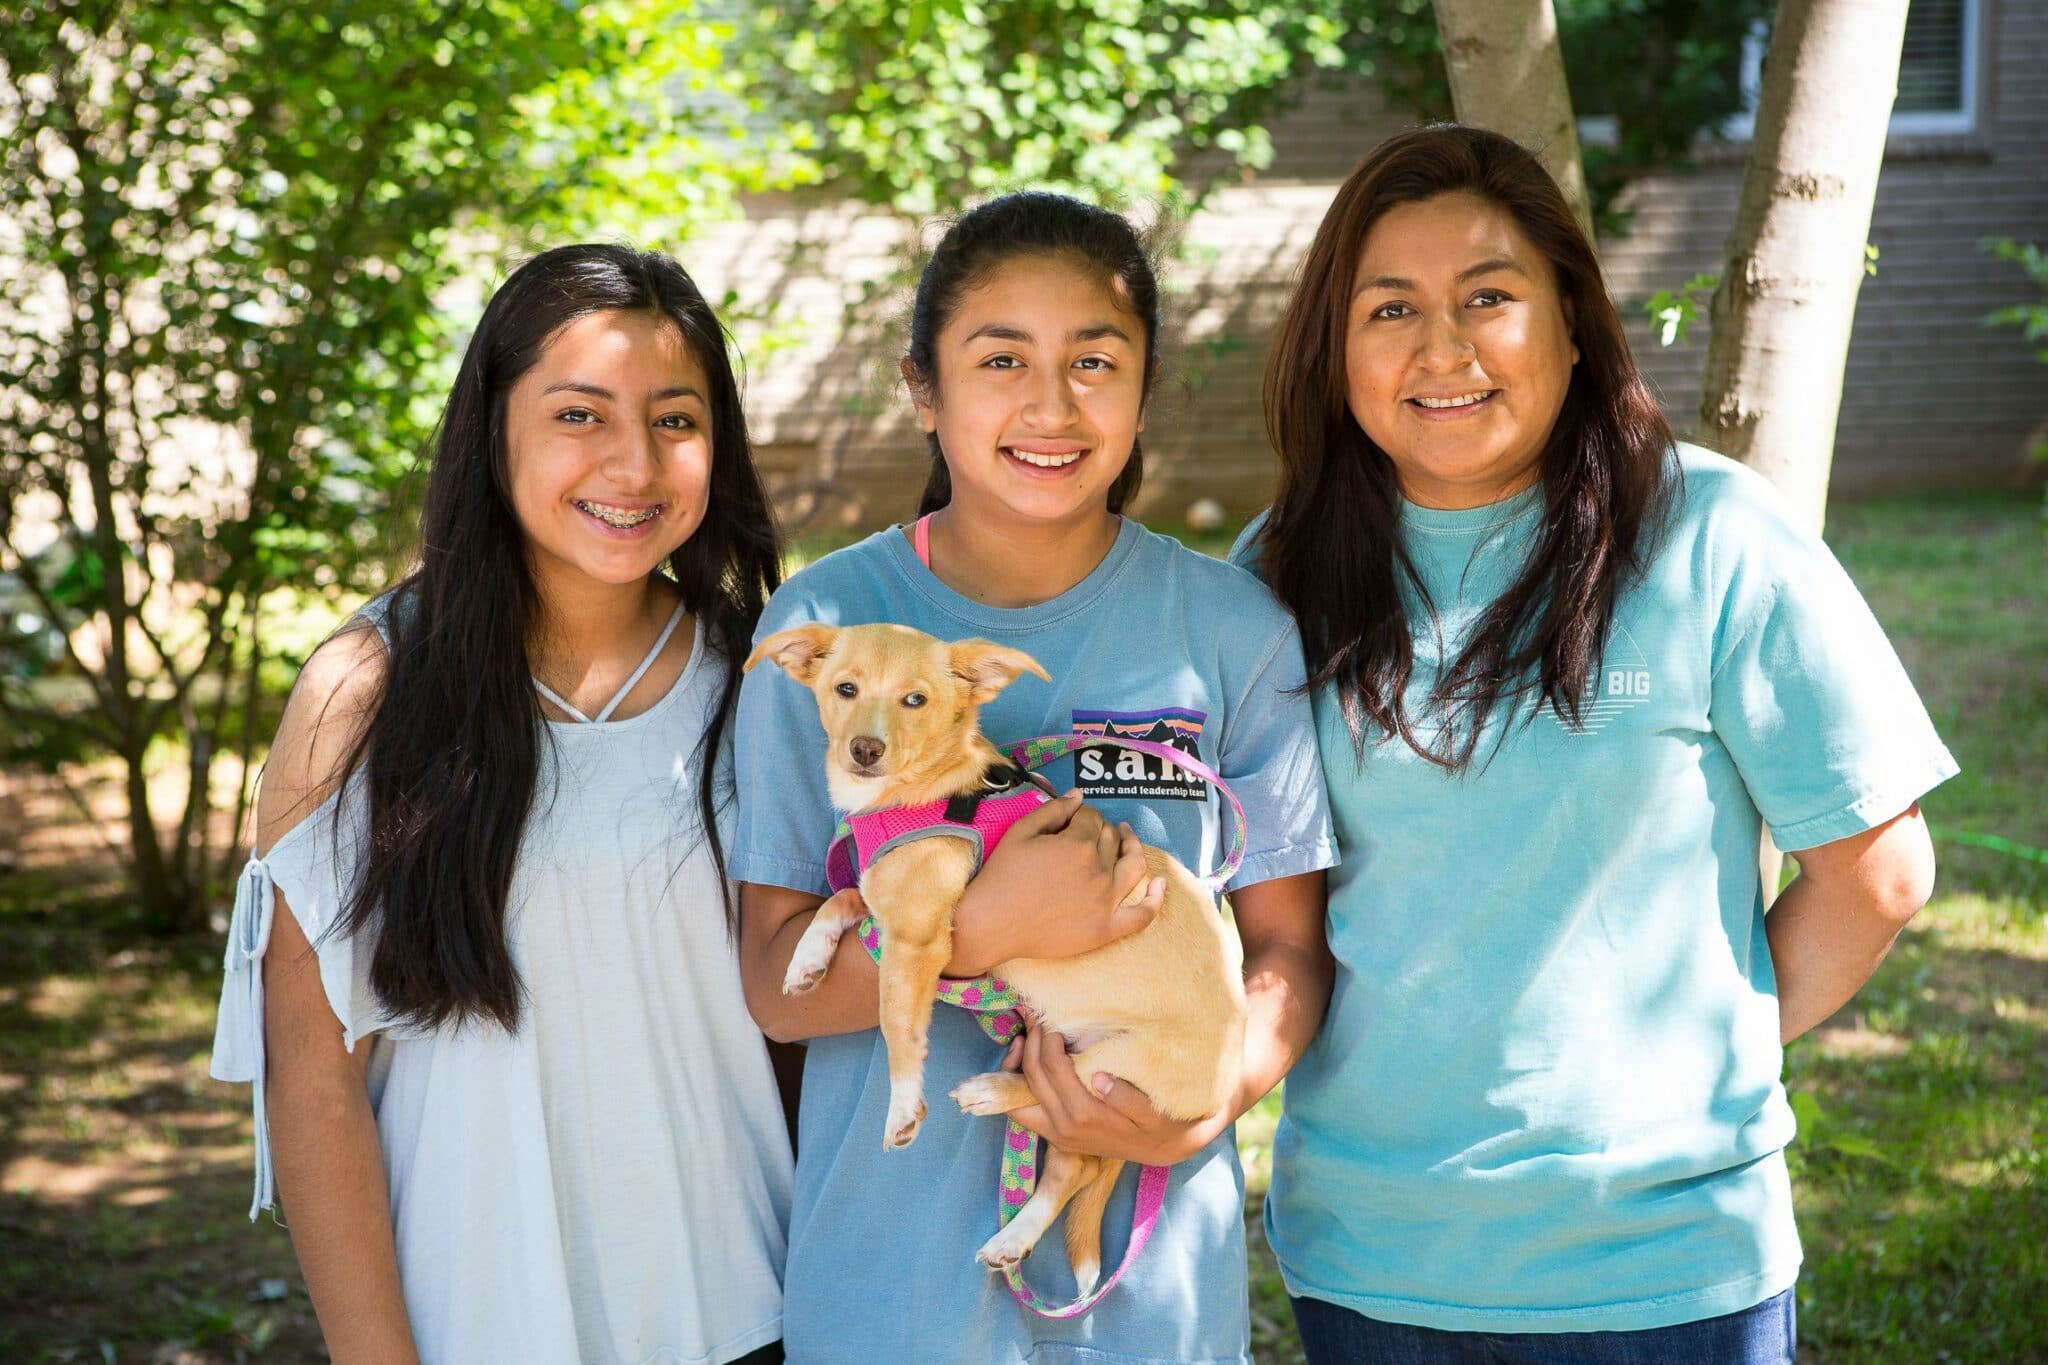 Northwest-Orthodontics-Dog-Adoption-2018-3-1